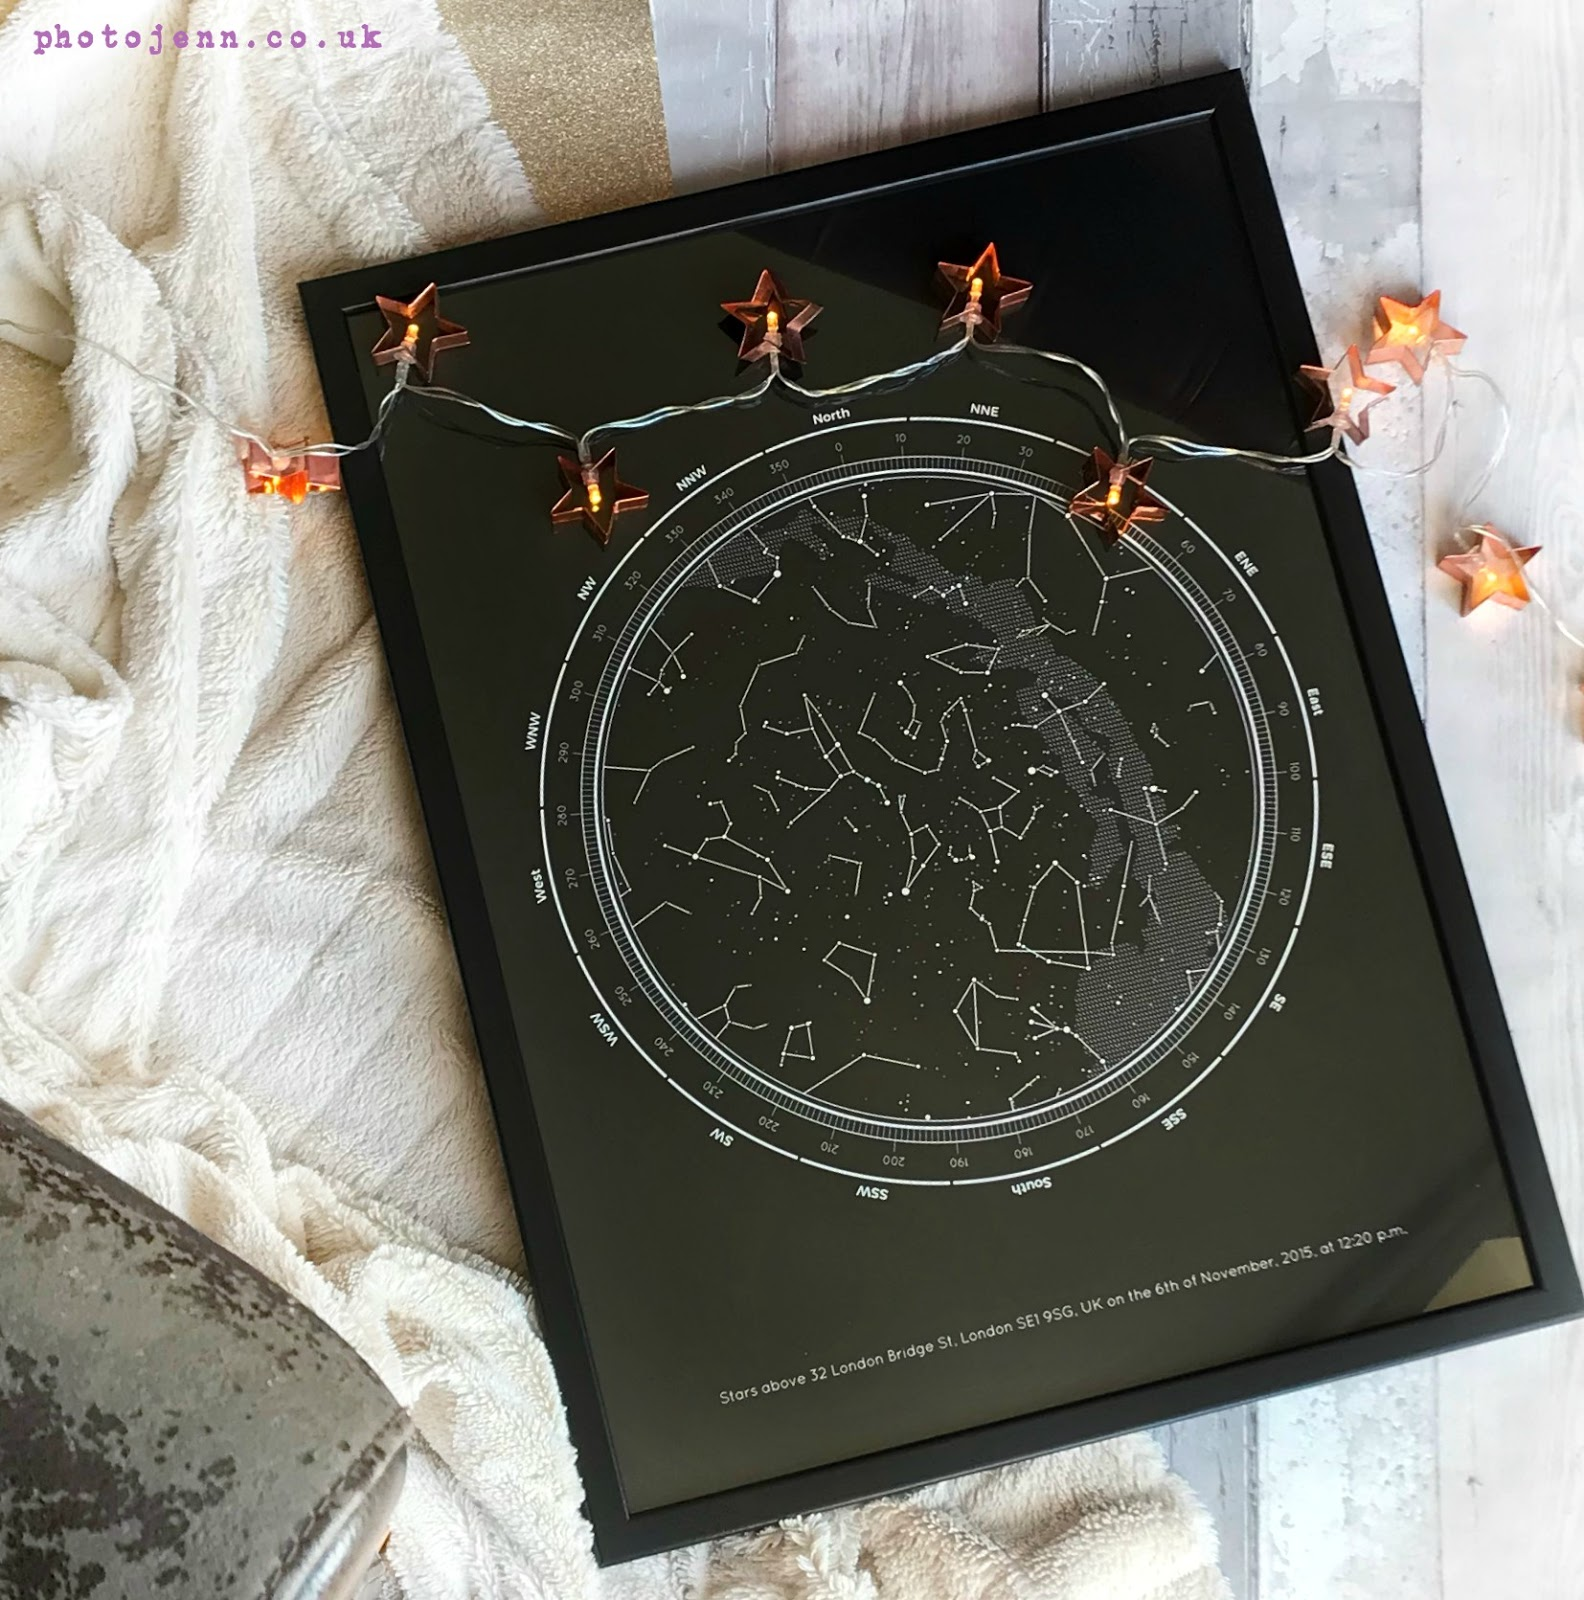 photo jenn ic personalised star map from under lucky stars. Black Bedroom Furniture Sets. Home Design Ideas